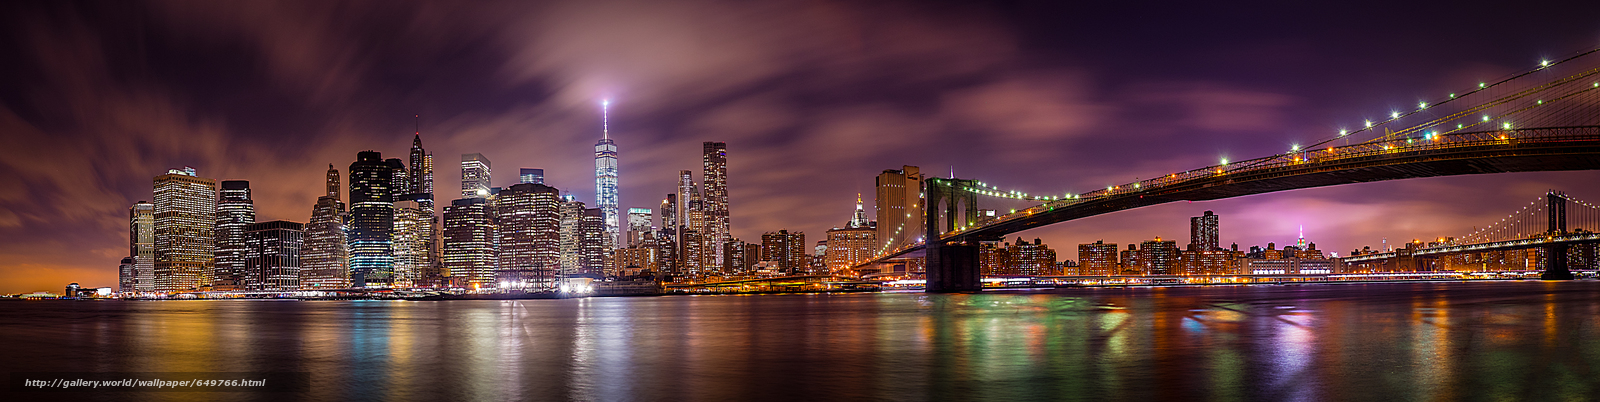 New York City, Manhattan, Brooklyn Bridge, East River, New York, Manhattan, Brooklyn Bridge, the East River, city ​​nightlife, panorama